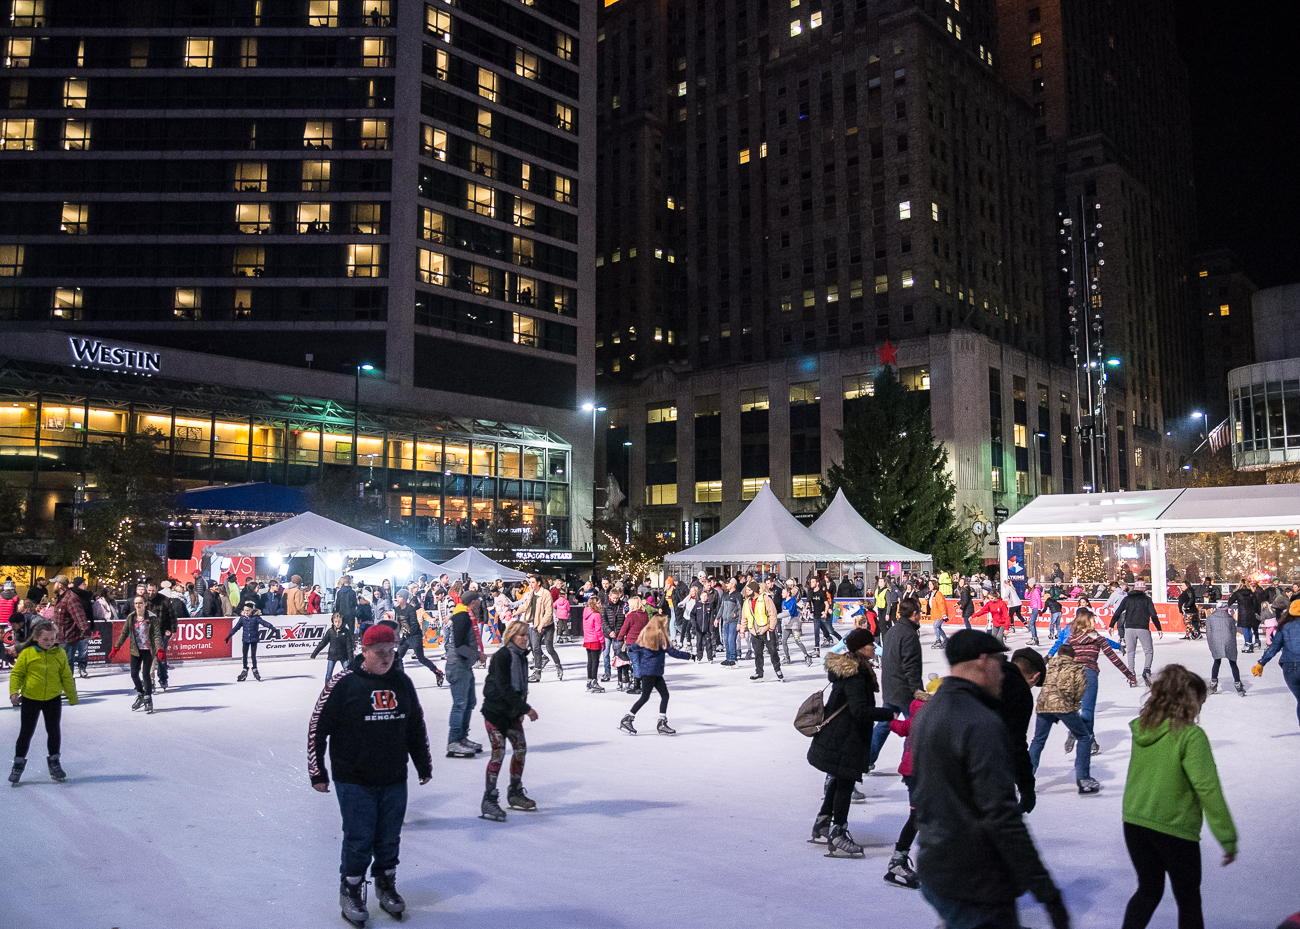 <p></p><p>The ice rink was open and filled with skaters all night long. / Image: Phil Armstrong, Cincinnati Refined // Published: 11.24.18</p>